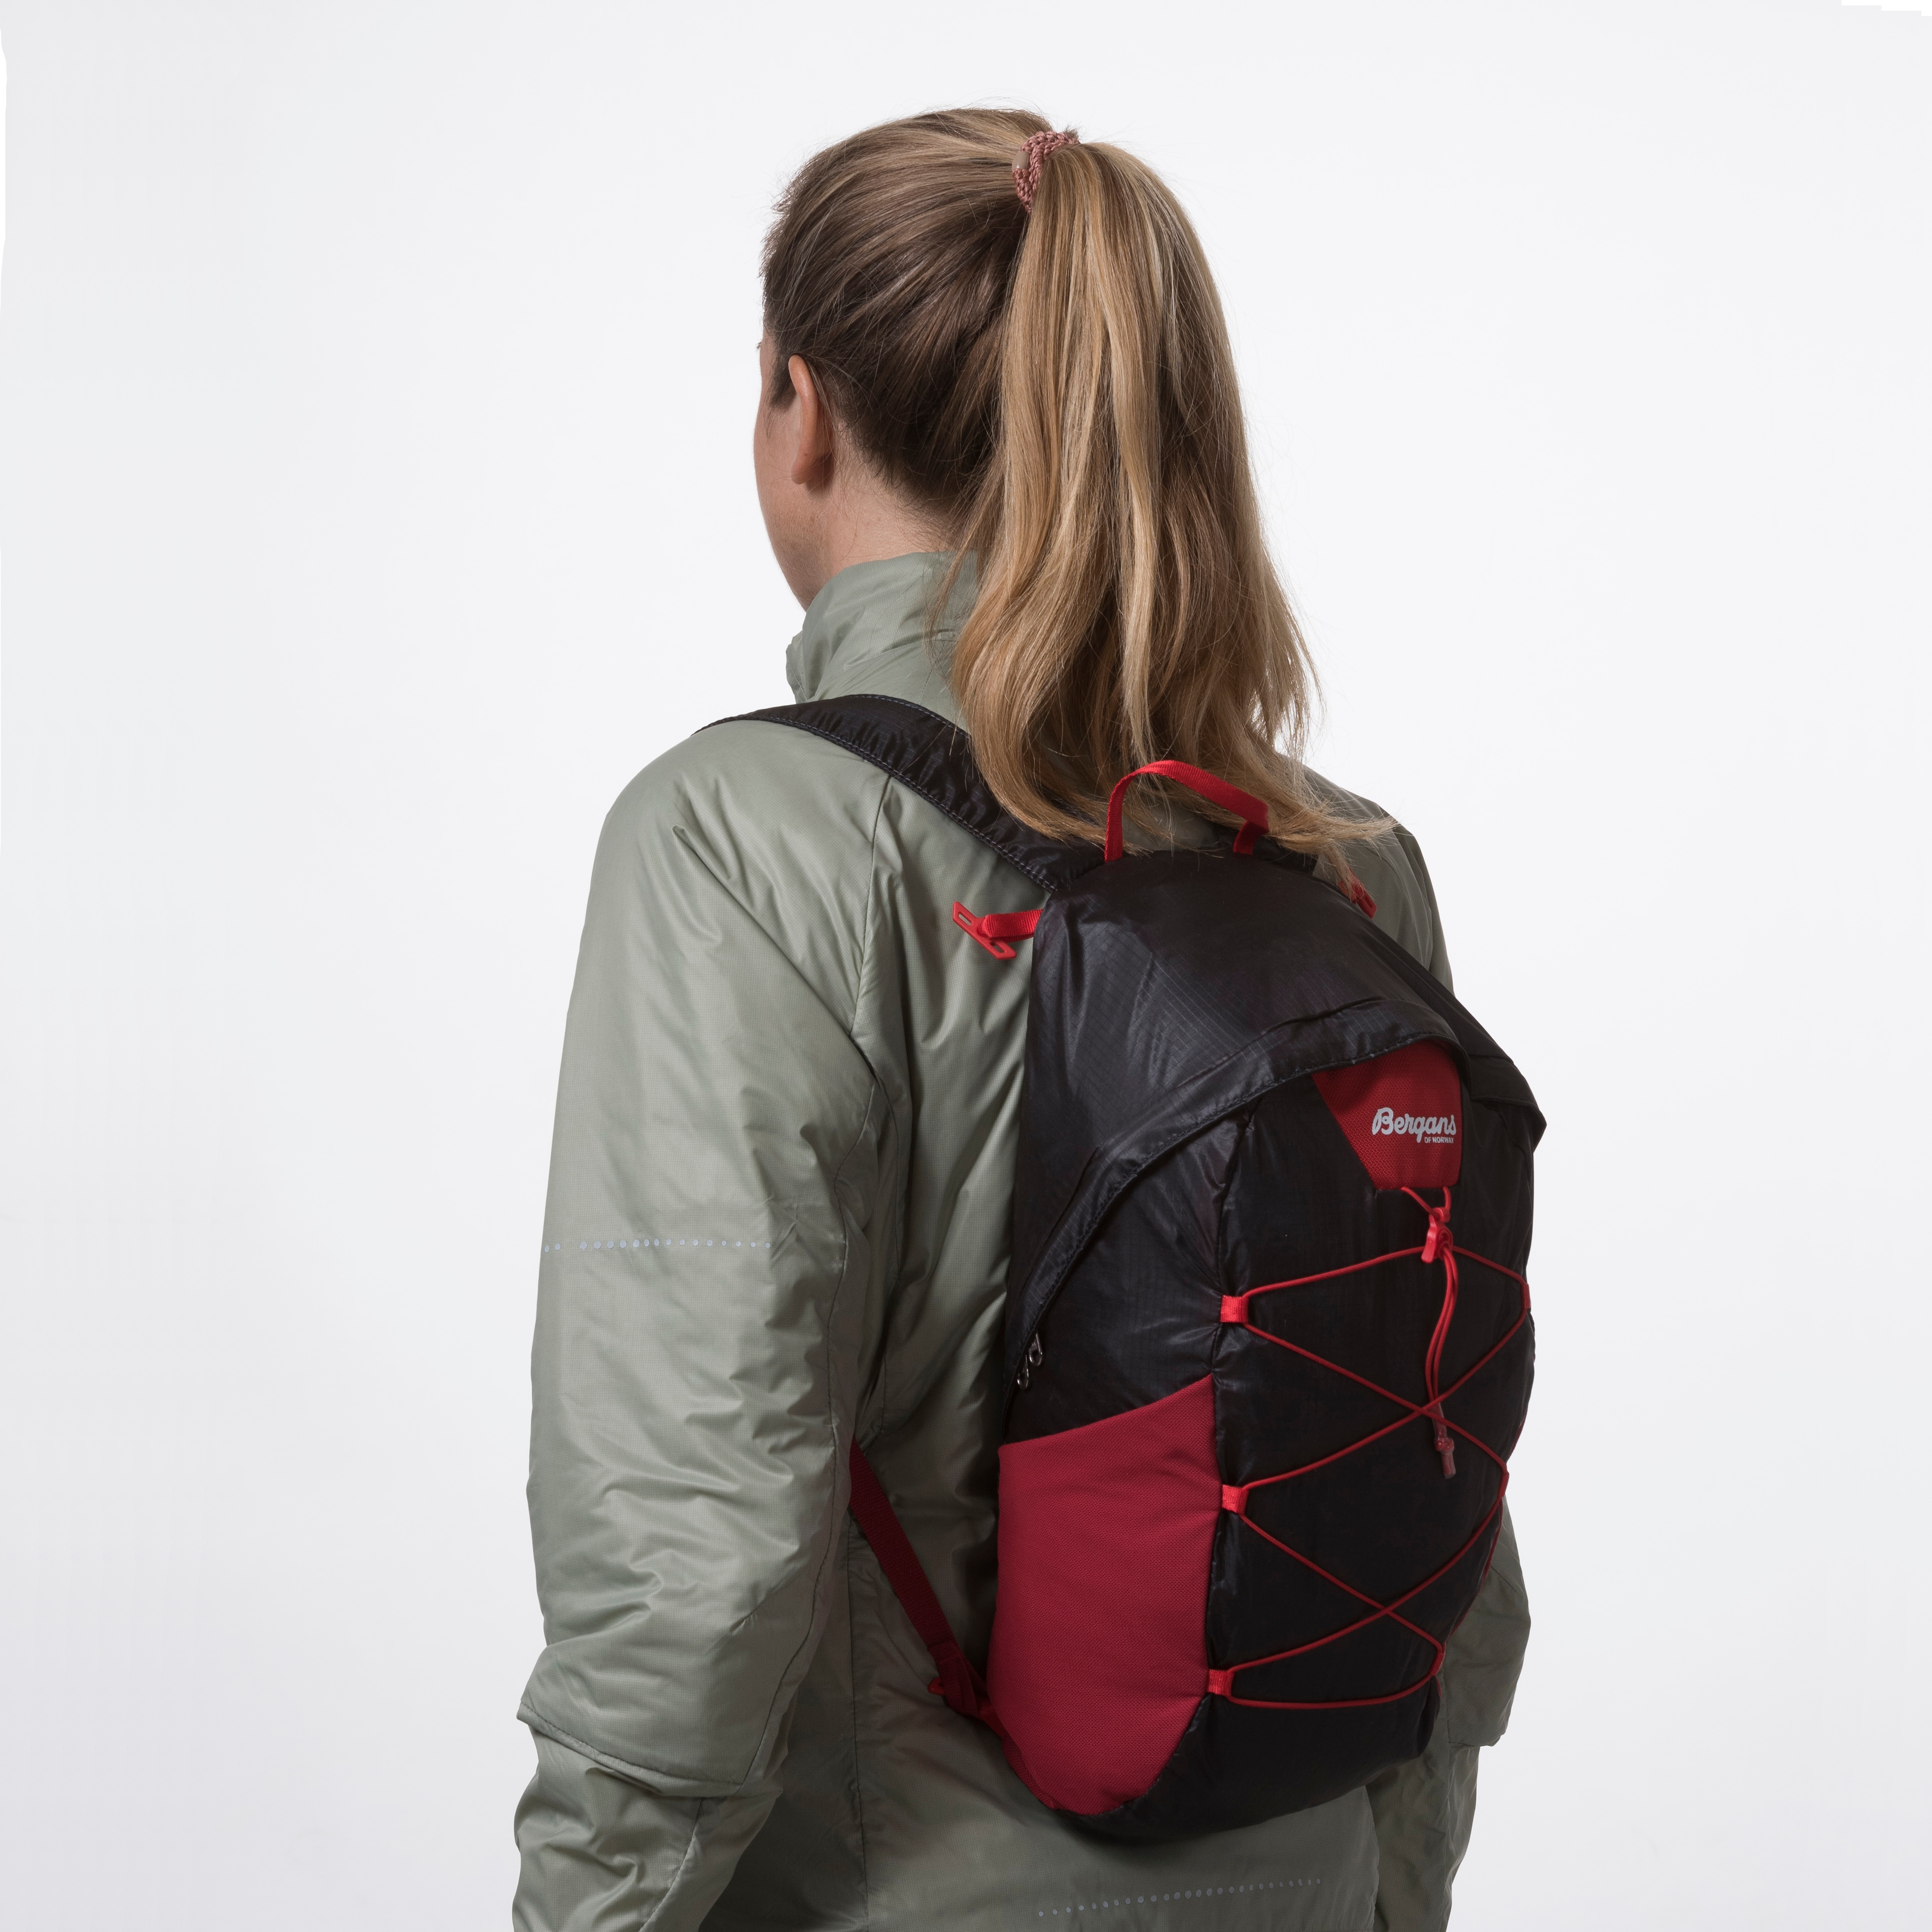 PLUS Daypack